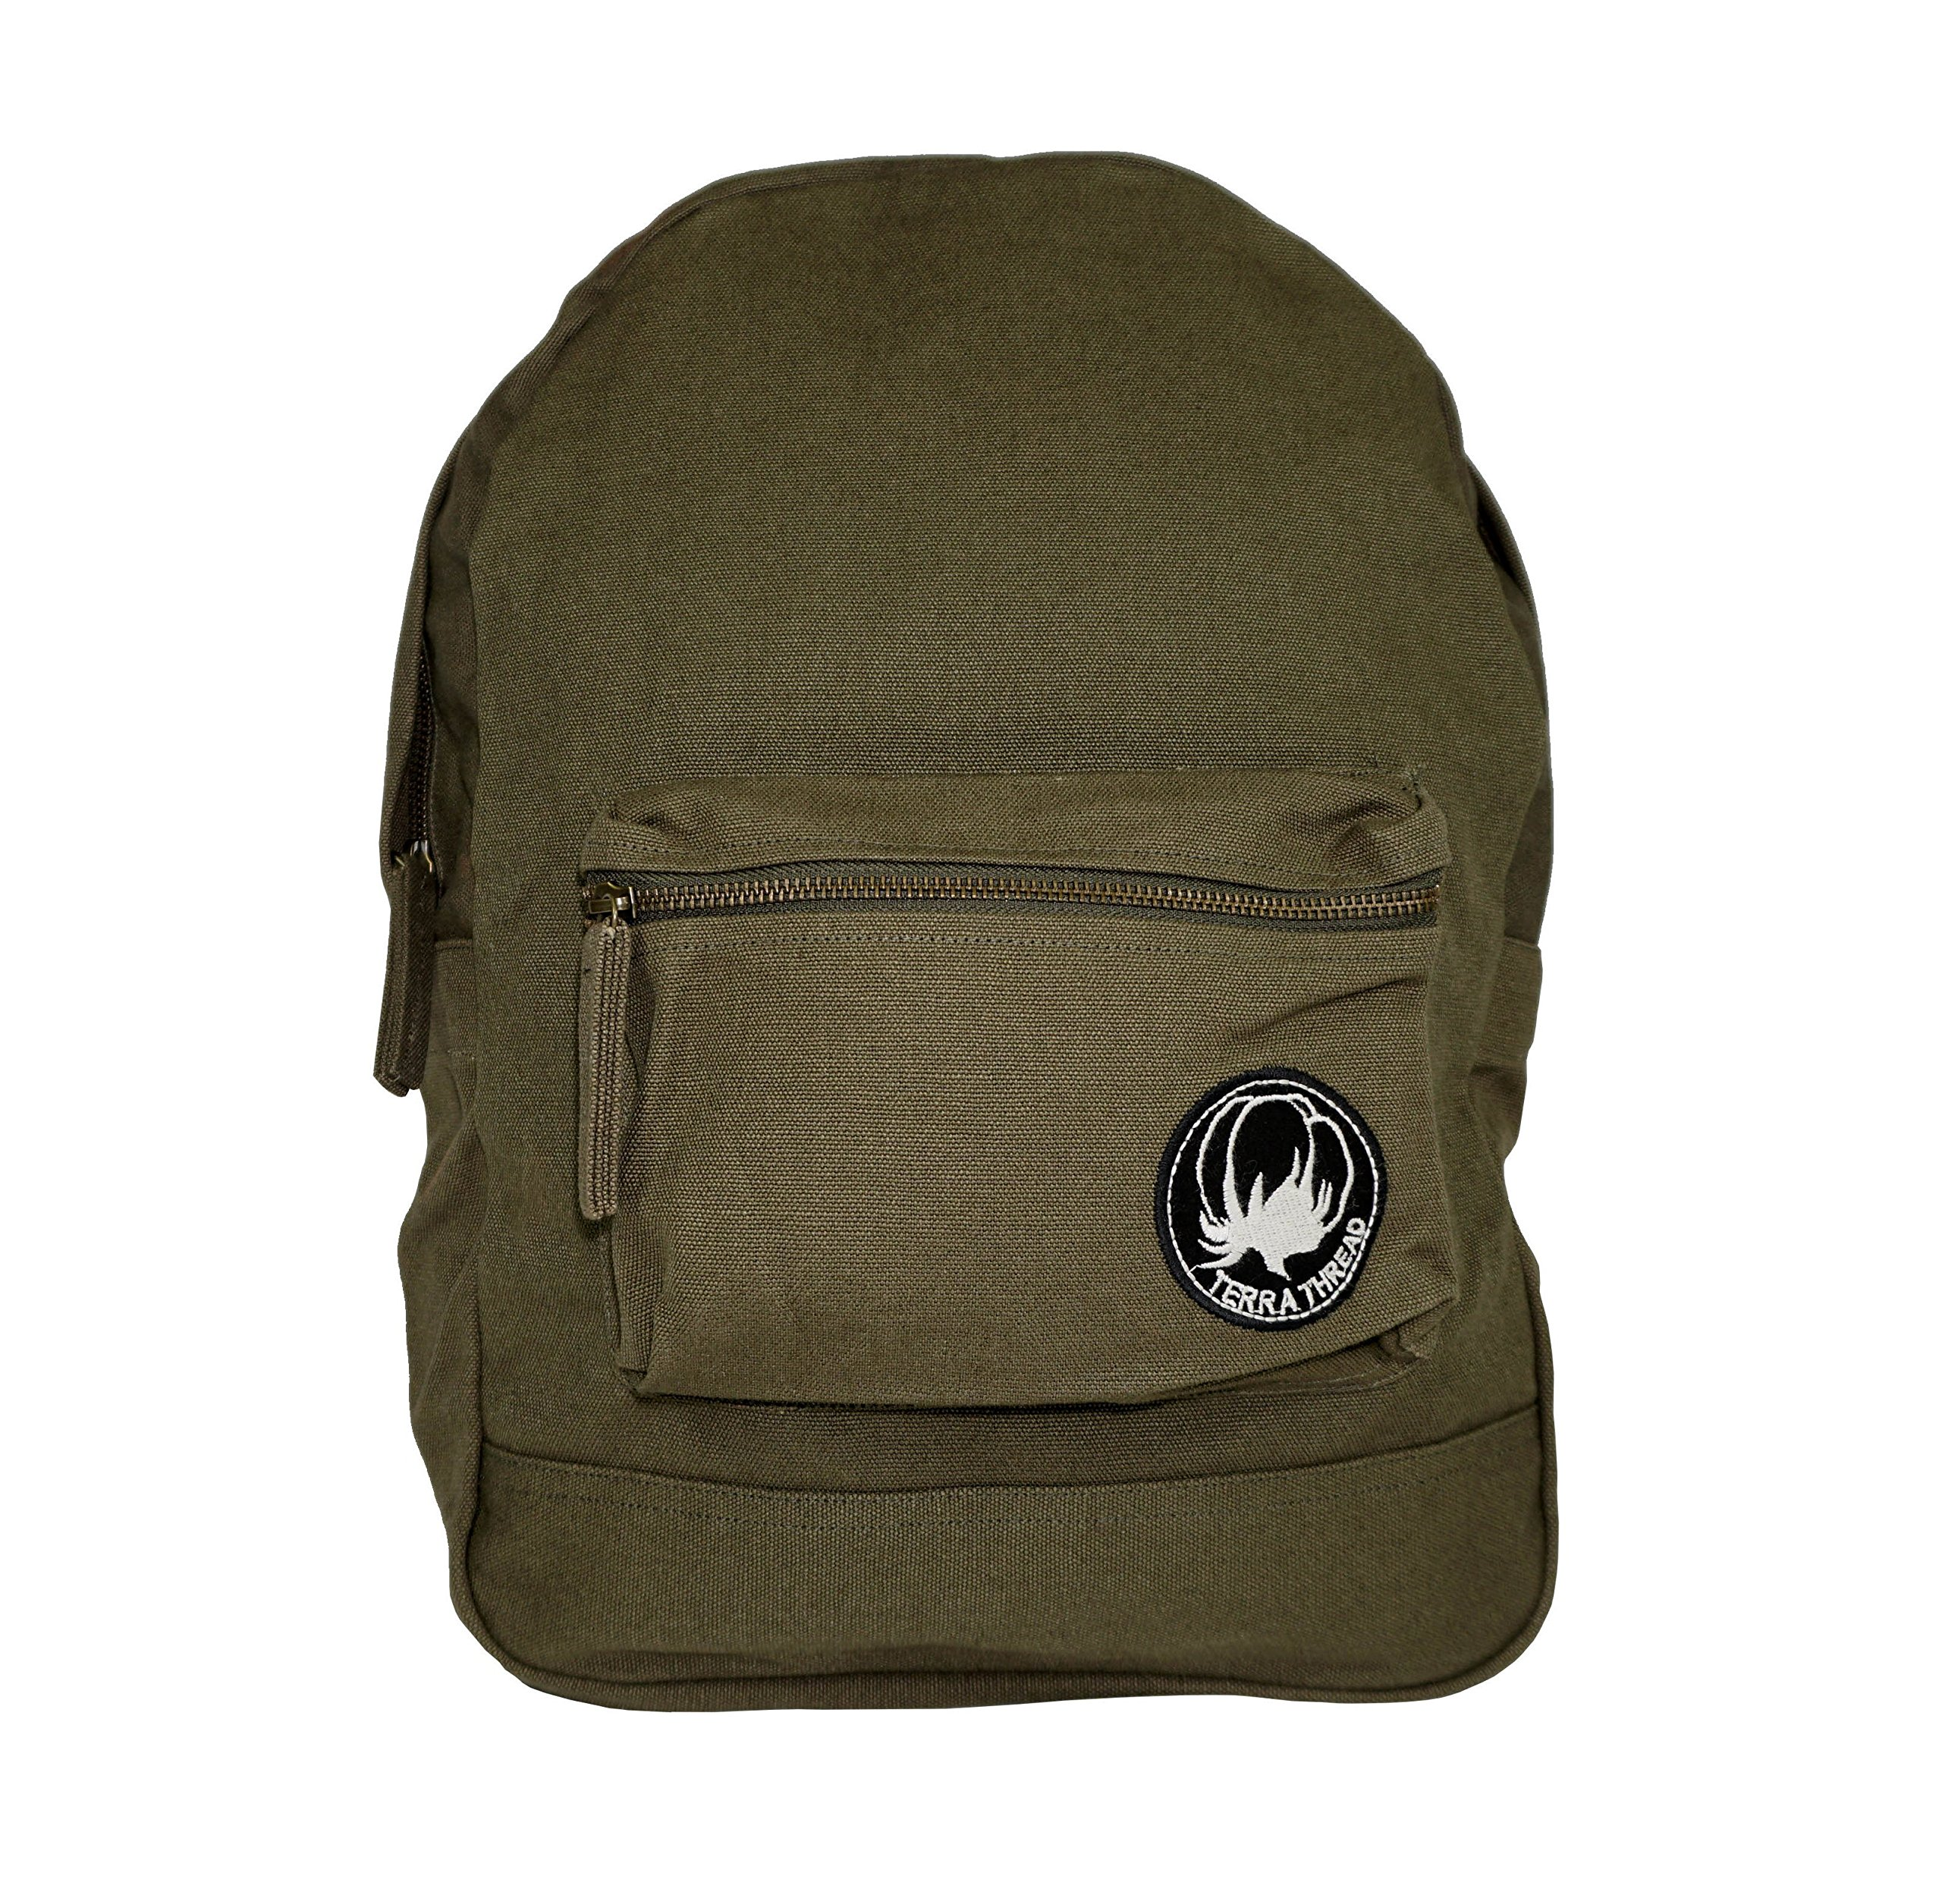 Ethically sourced backpack for men & women. Certified organic cotton. Fairtrade.